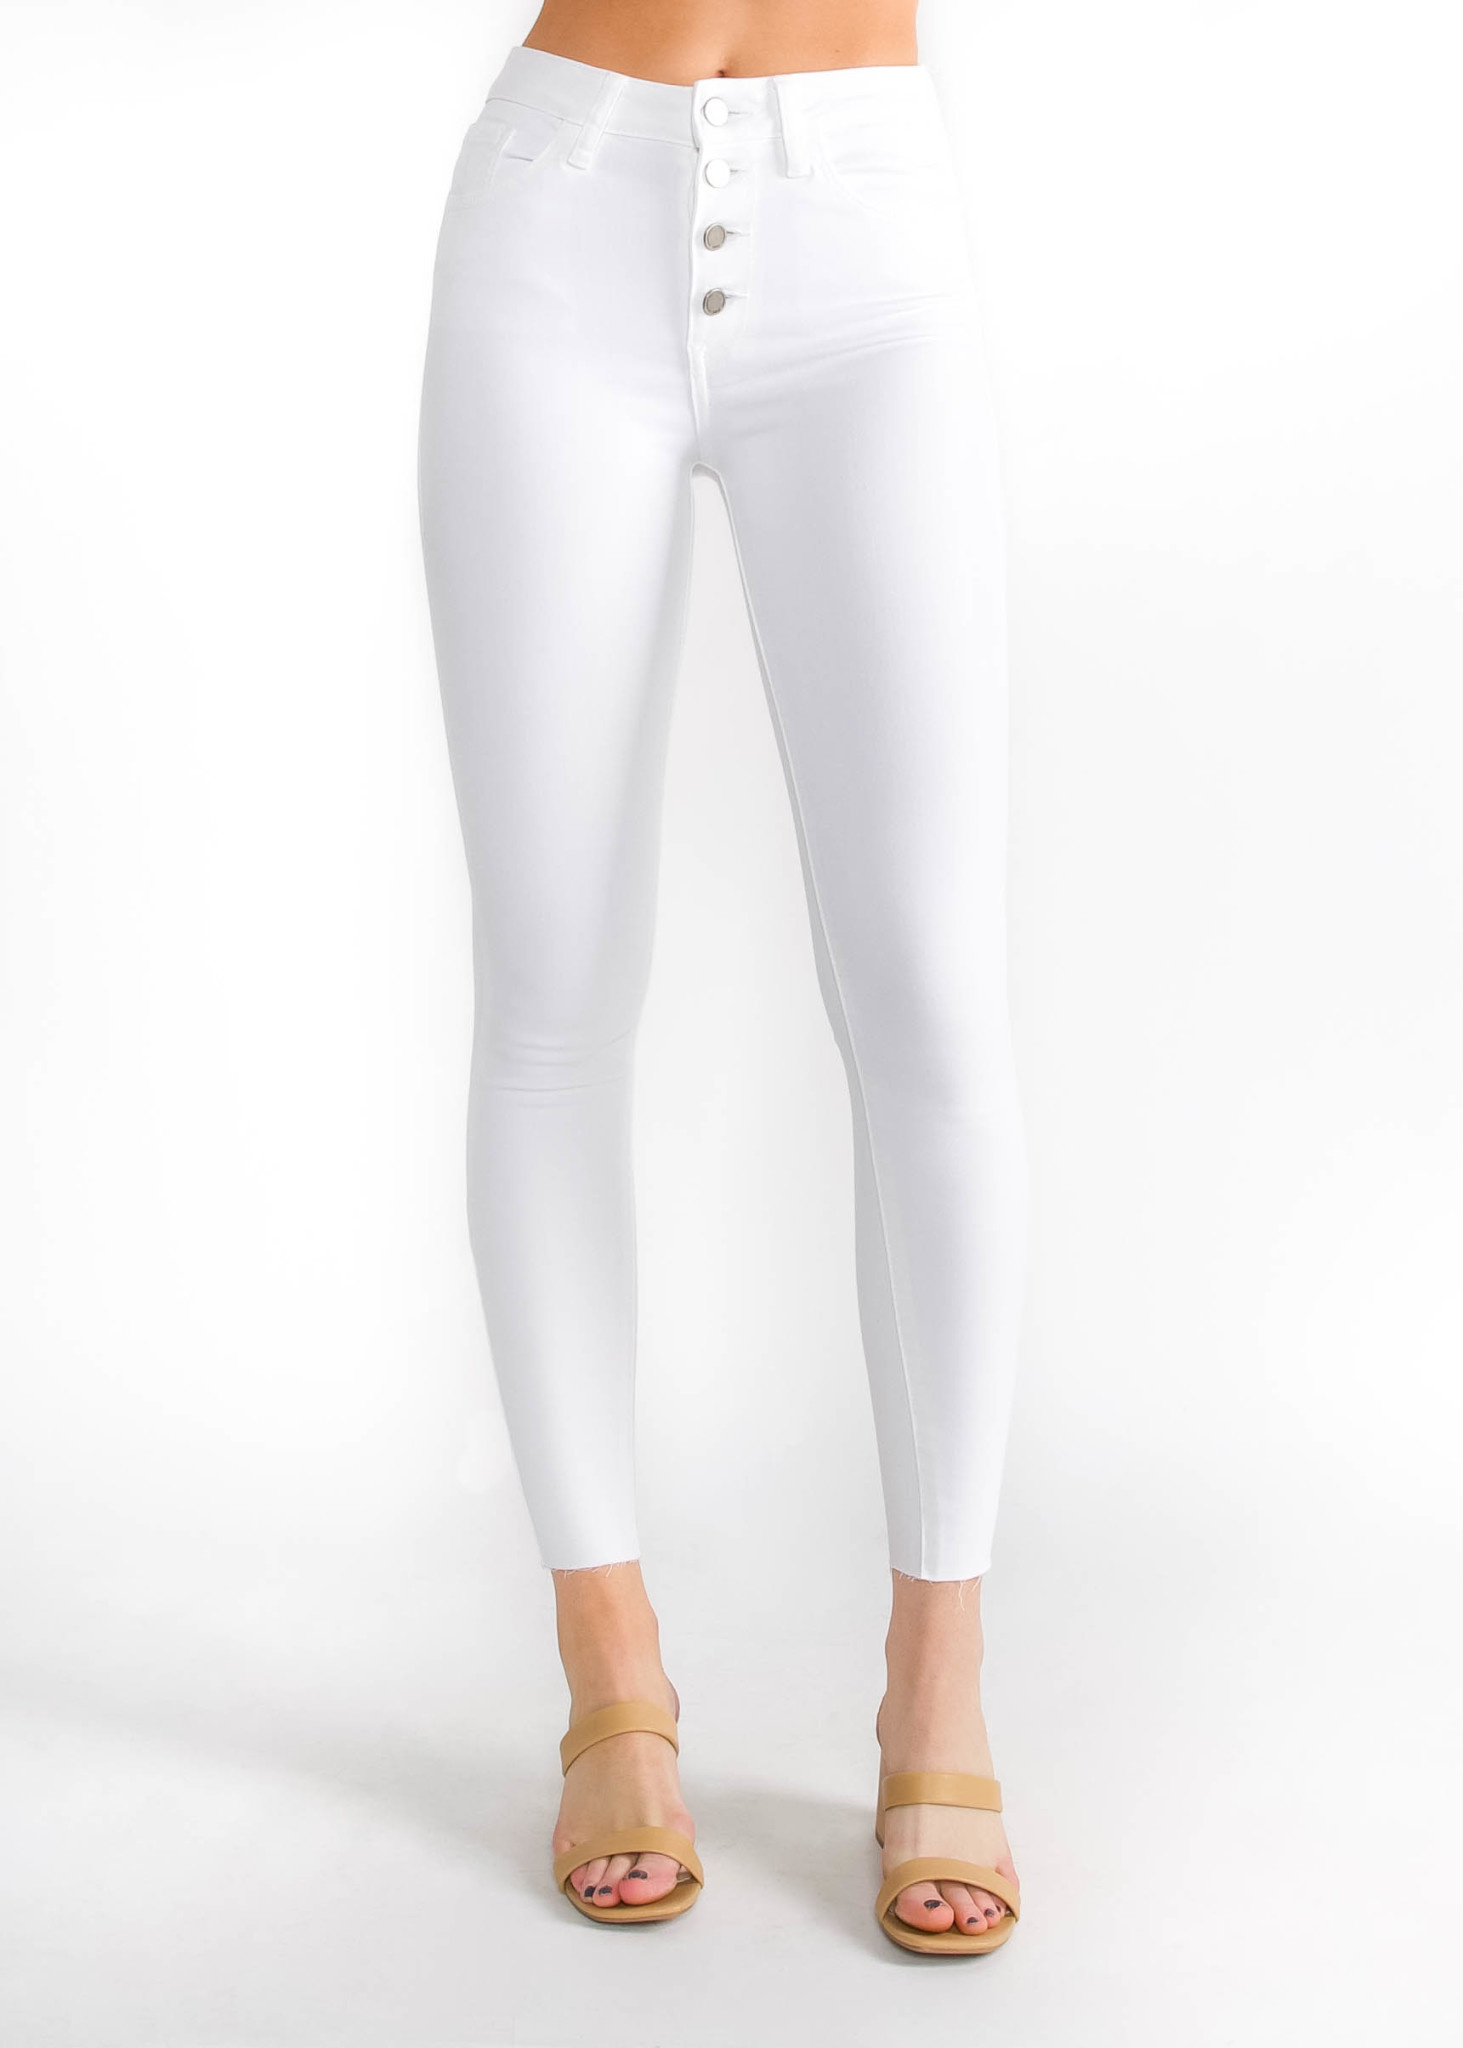 SUMMER CRUSH WHITE JEANS